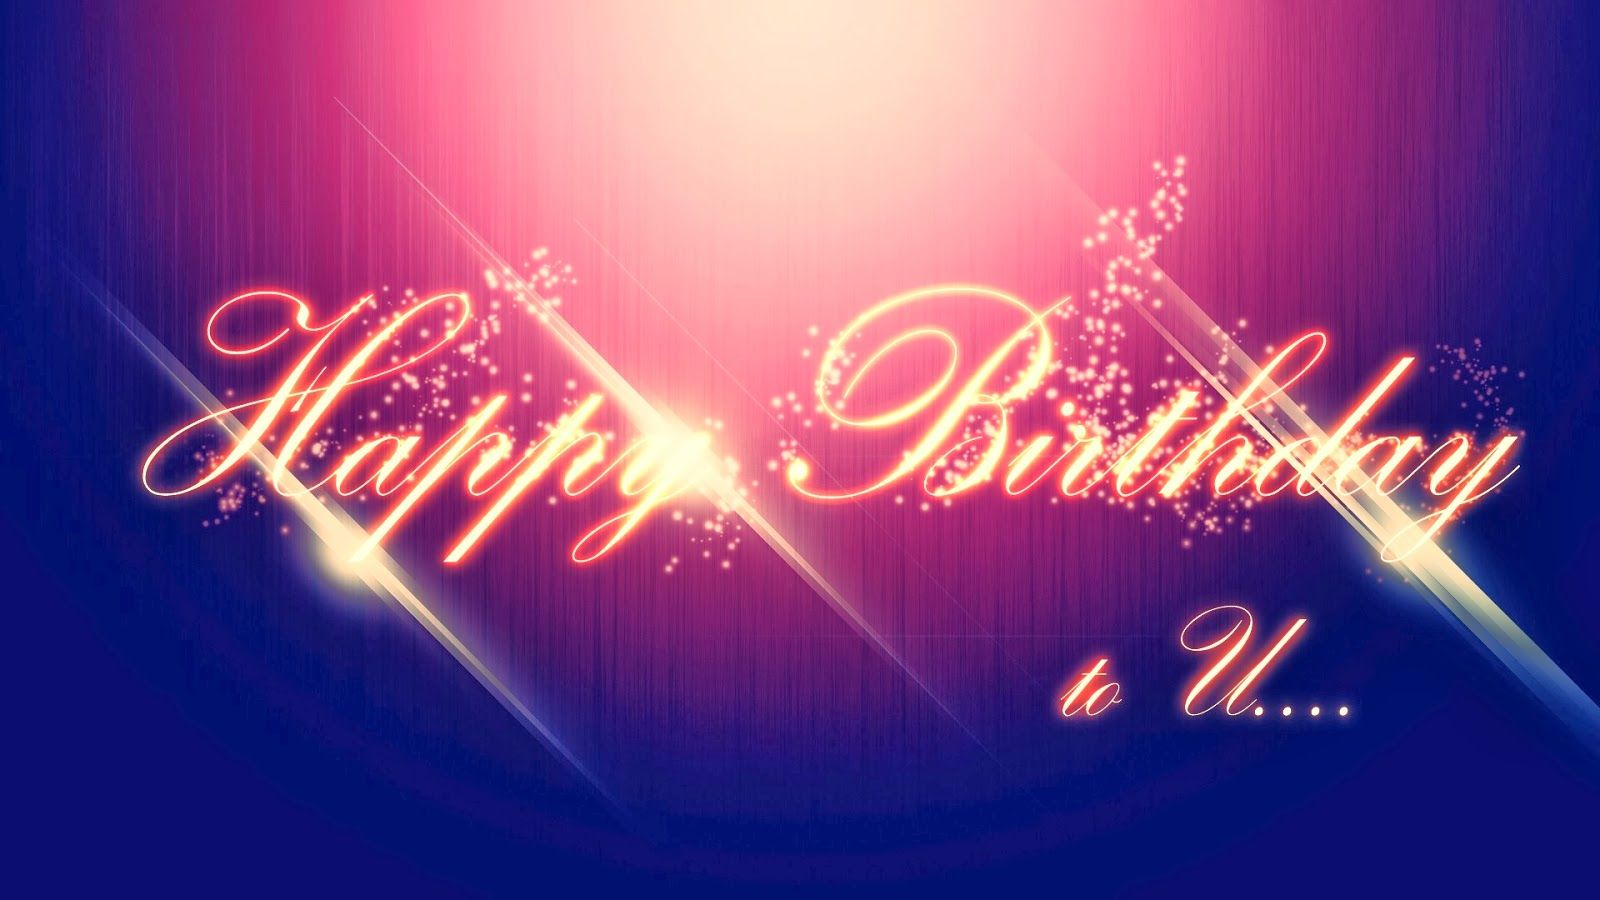 Best Birthday Wishes Quotes Enchanting Happy Birthday Wishes Best Friend Poem Ideas For